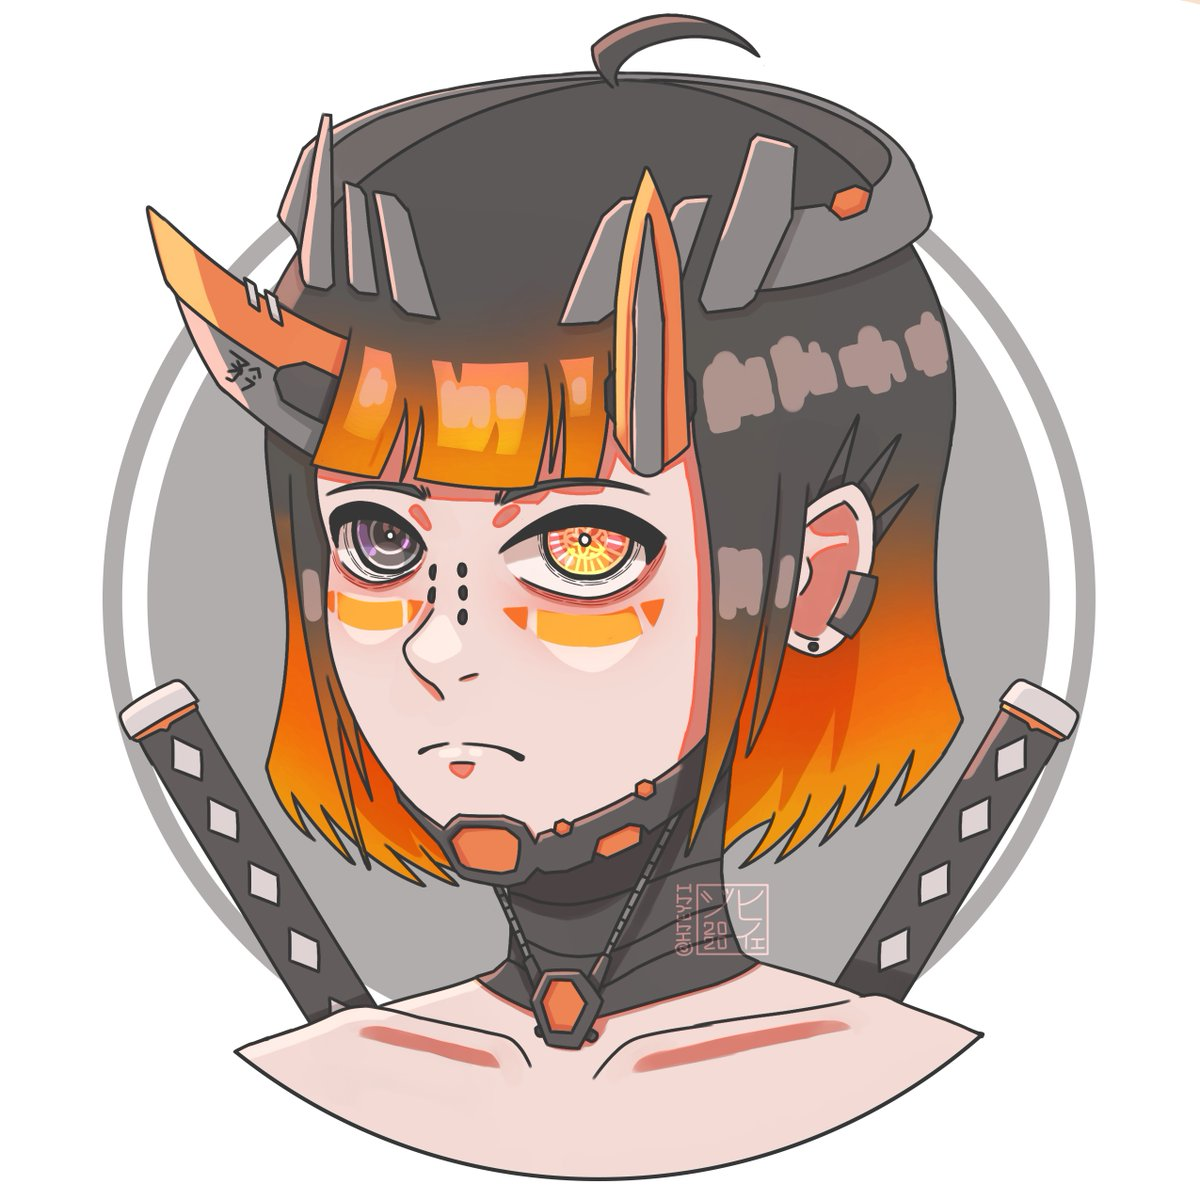 Finished my OC icon! Did two versions one being cel-shaded and the other with how I normally color my artworks. Which one for you looks better? C:  #art #artph #artistsontwitter #ArtistsofSEA #Cyberpunk2077 #cyberpunk #cyber #Cyborg #OC #originalcharacter #illustration https://t.co/VnsIldQHXk